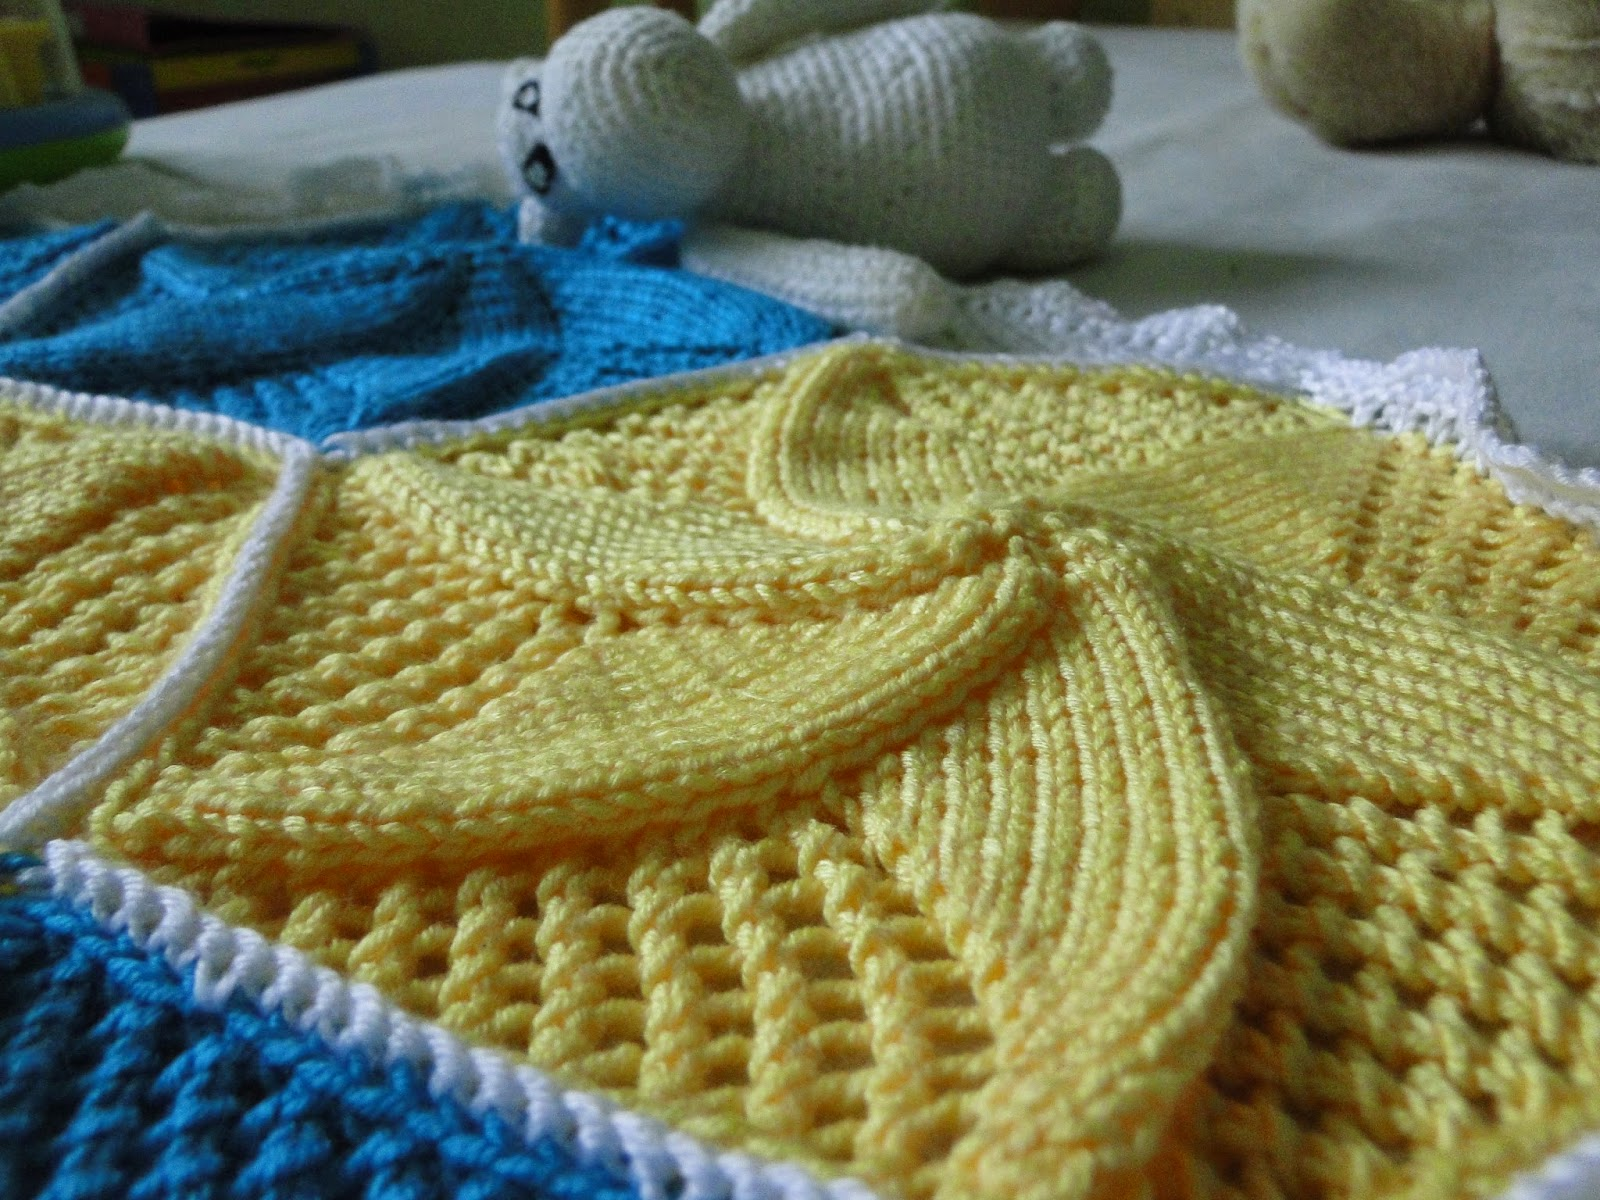 Baby Star Blanket Pattern made with knitted hexagons